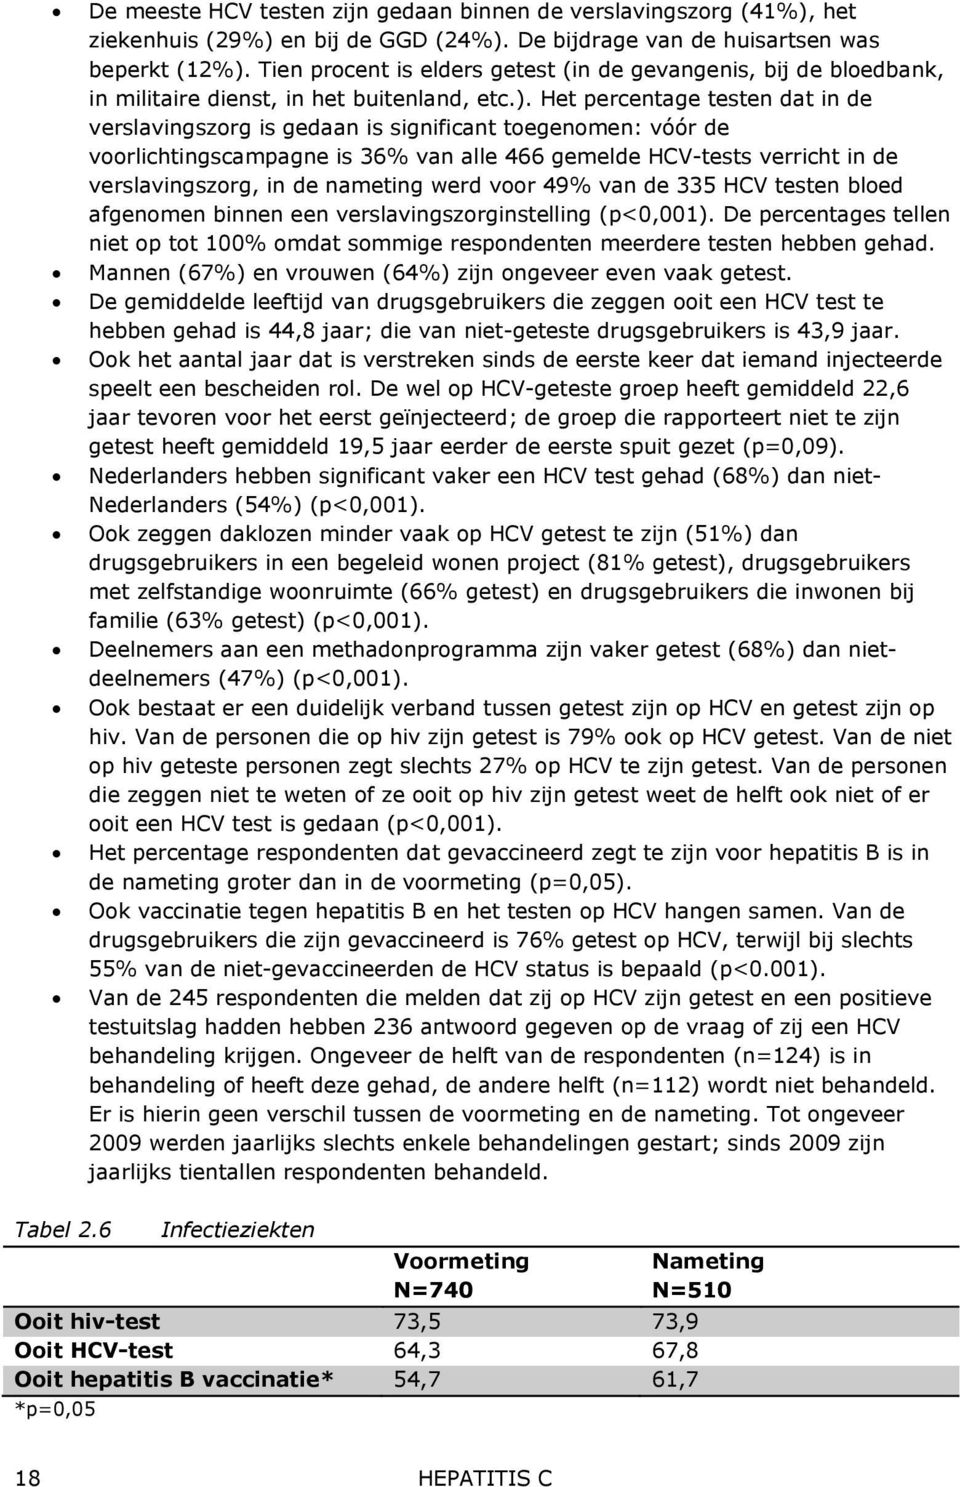 Het percentage testen dat in de verslavingszorg is gedaan is significant toegenomen: vóór de voorlichtingscampagne is 36% van alle 466 gemelde HCV-tests verricht in de verslavingszorg, in de nameting